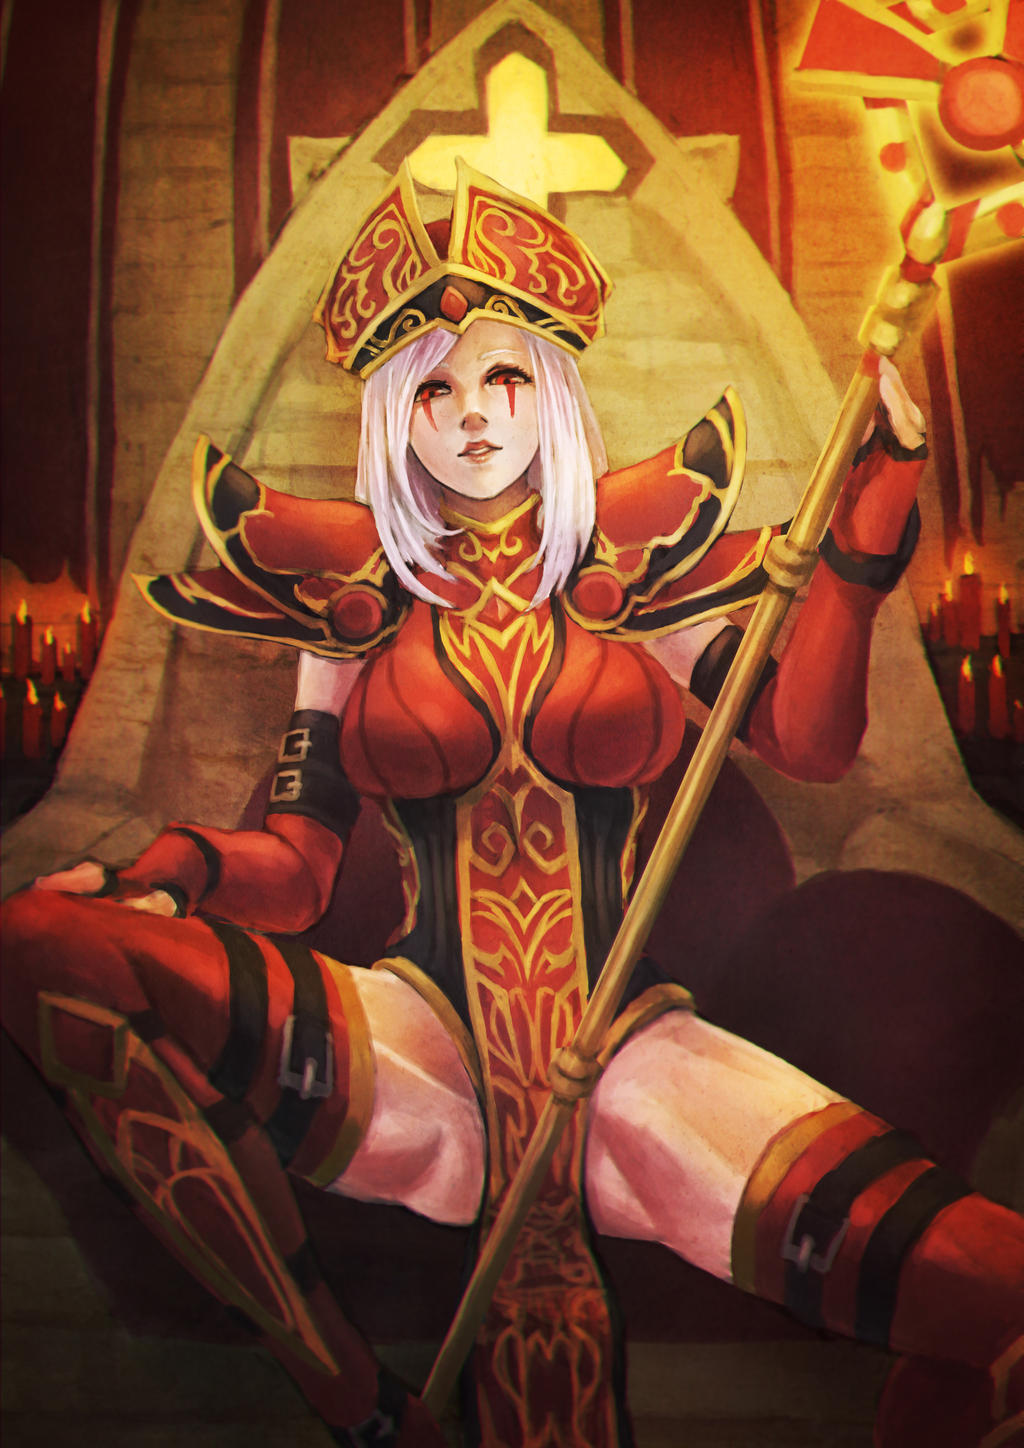 sally whitemane by monorirogue on deviantart